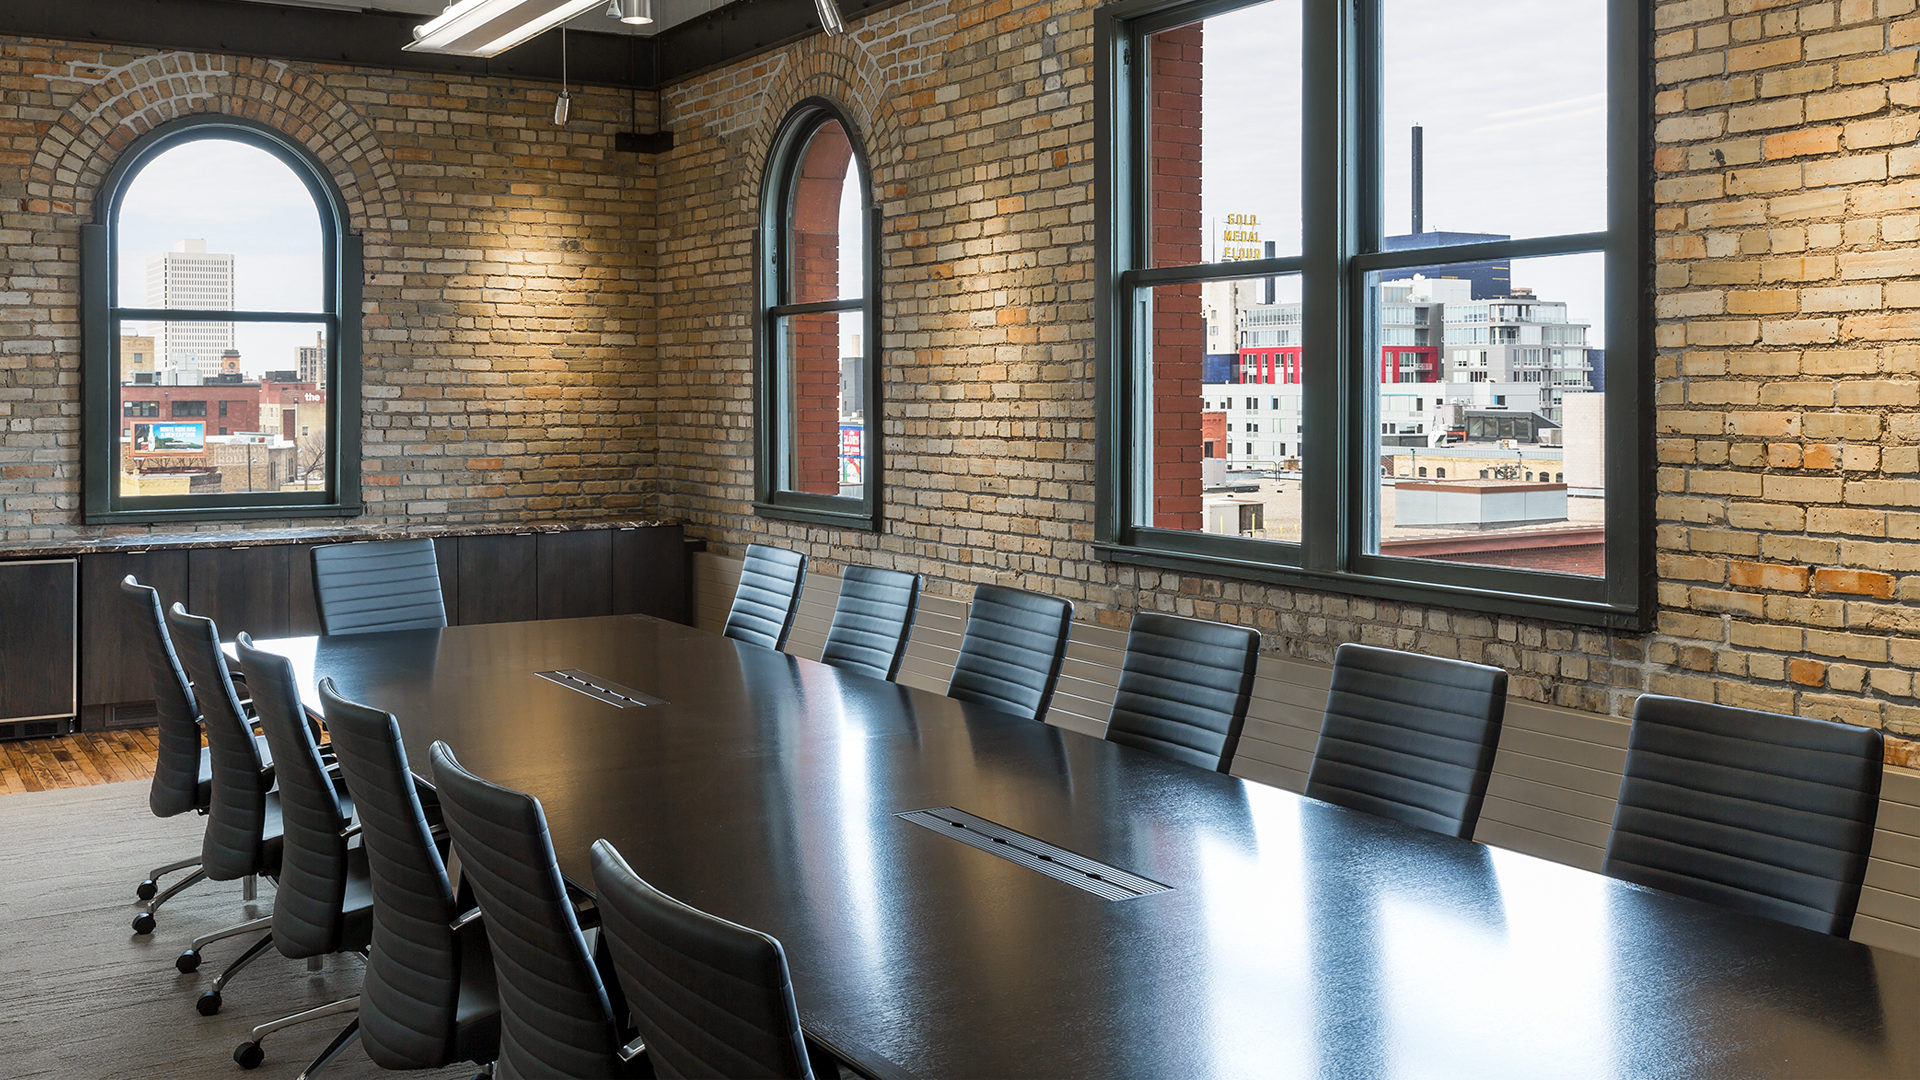 Valspar Applied Science and Technology Center VAST II Manufacturing High Tech RnD Brick Wall Conference Room